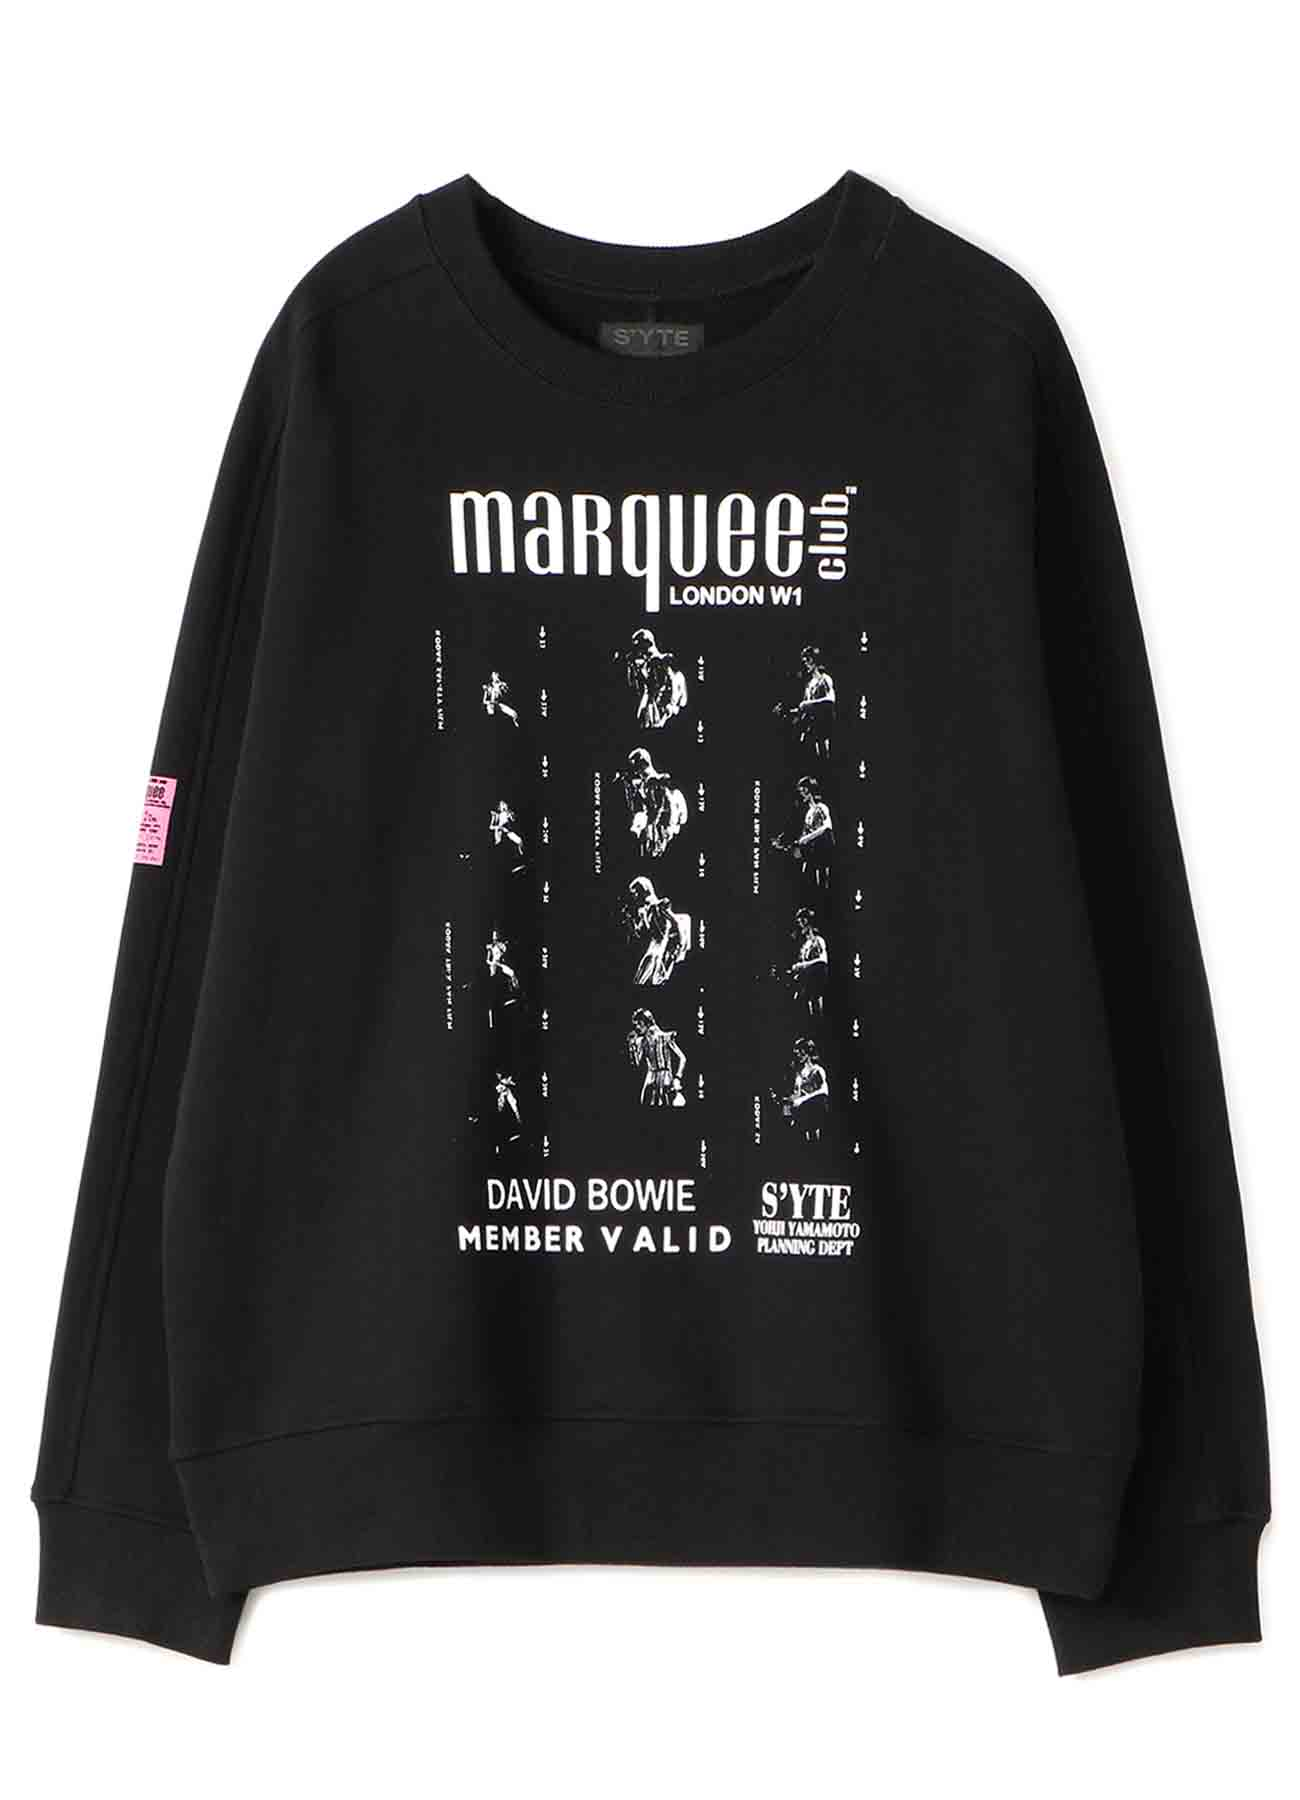 S'YTE × marquee club(TM) 1973 French Terry Stitch Work Crewneck Pullover